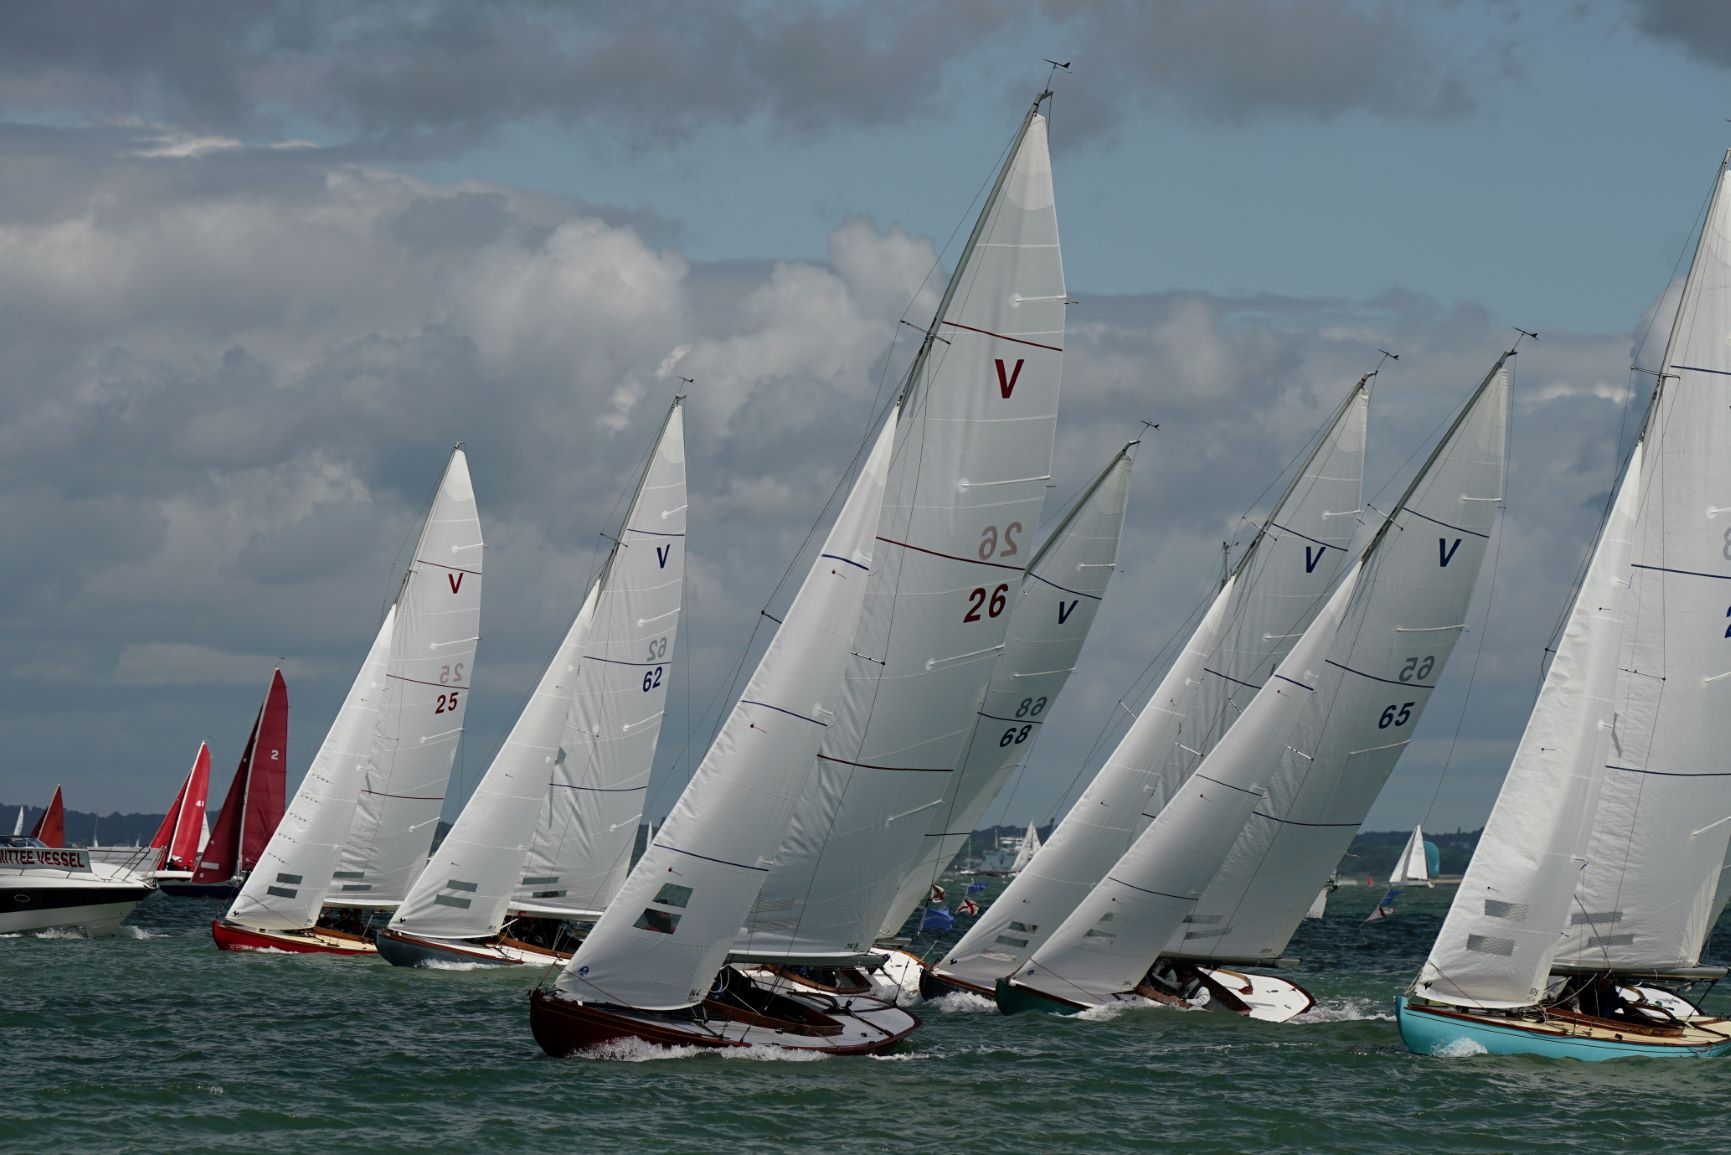 Cowes Week: A Guide To One Of The Most Historic Regattas In The World